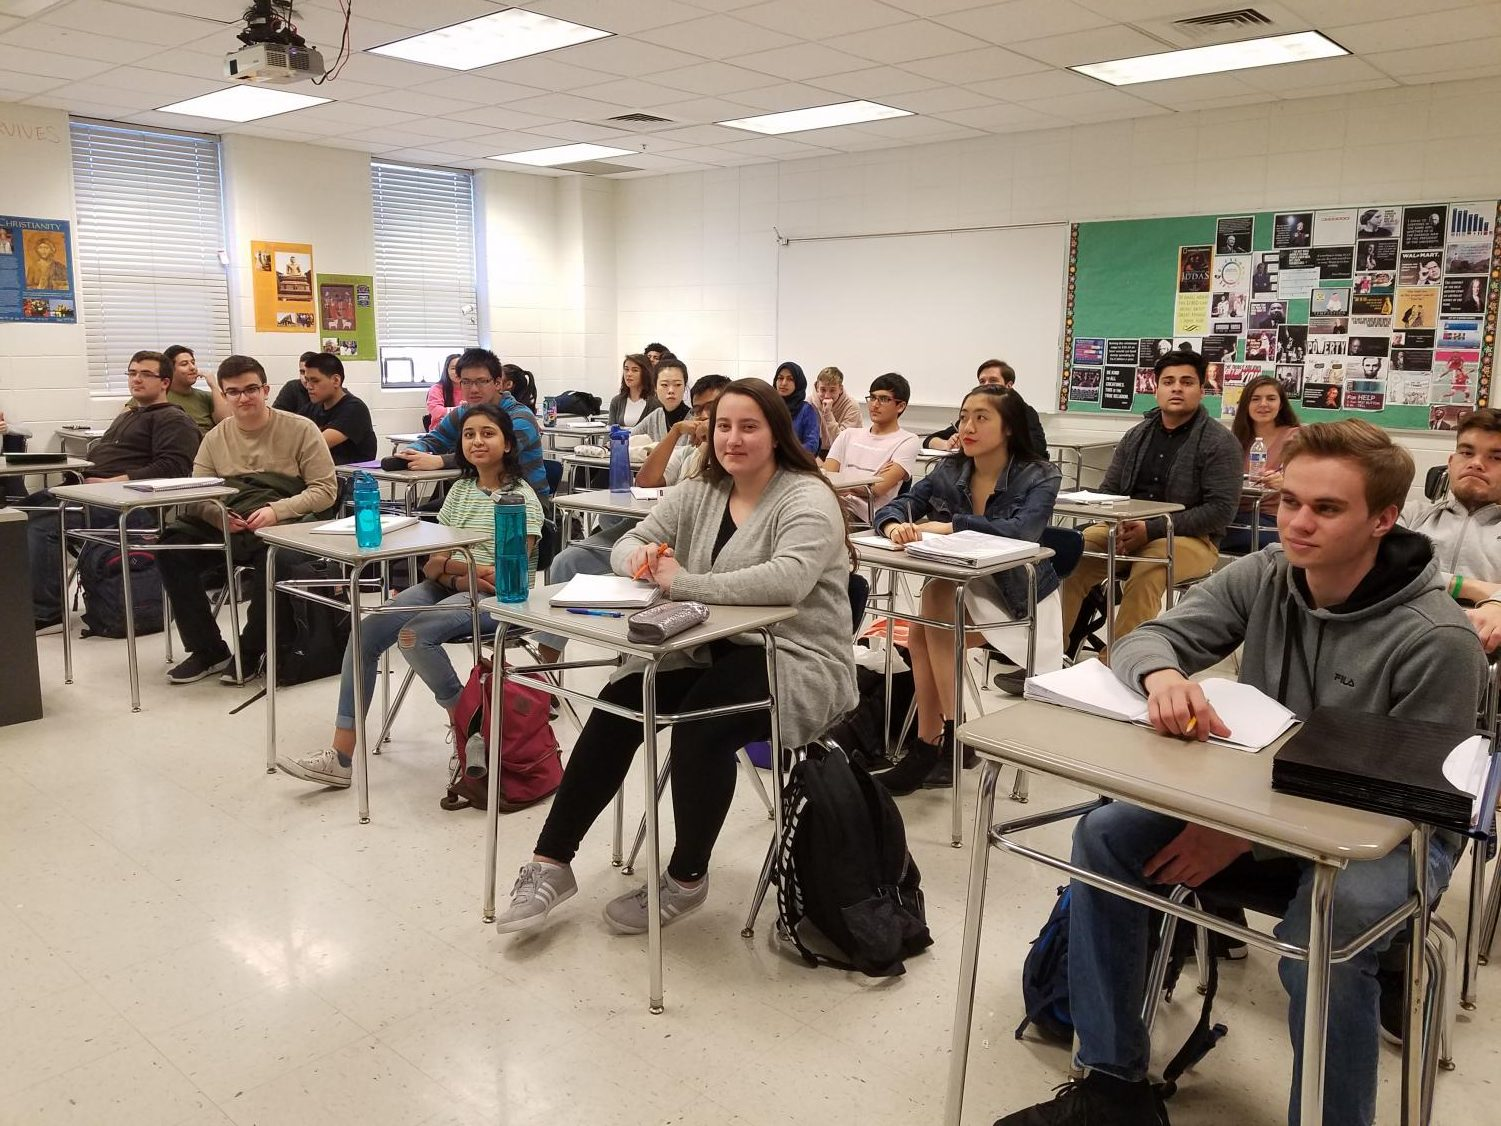 Niles North offers classes that represent the diverse student population